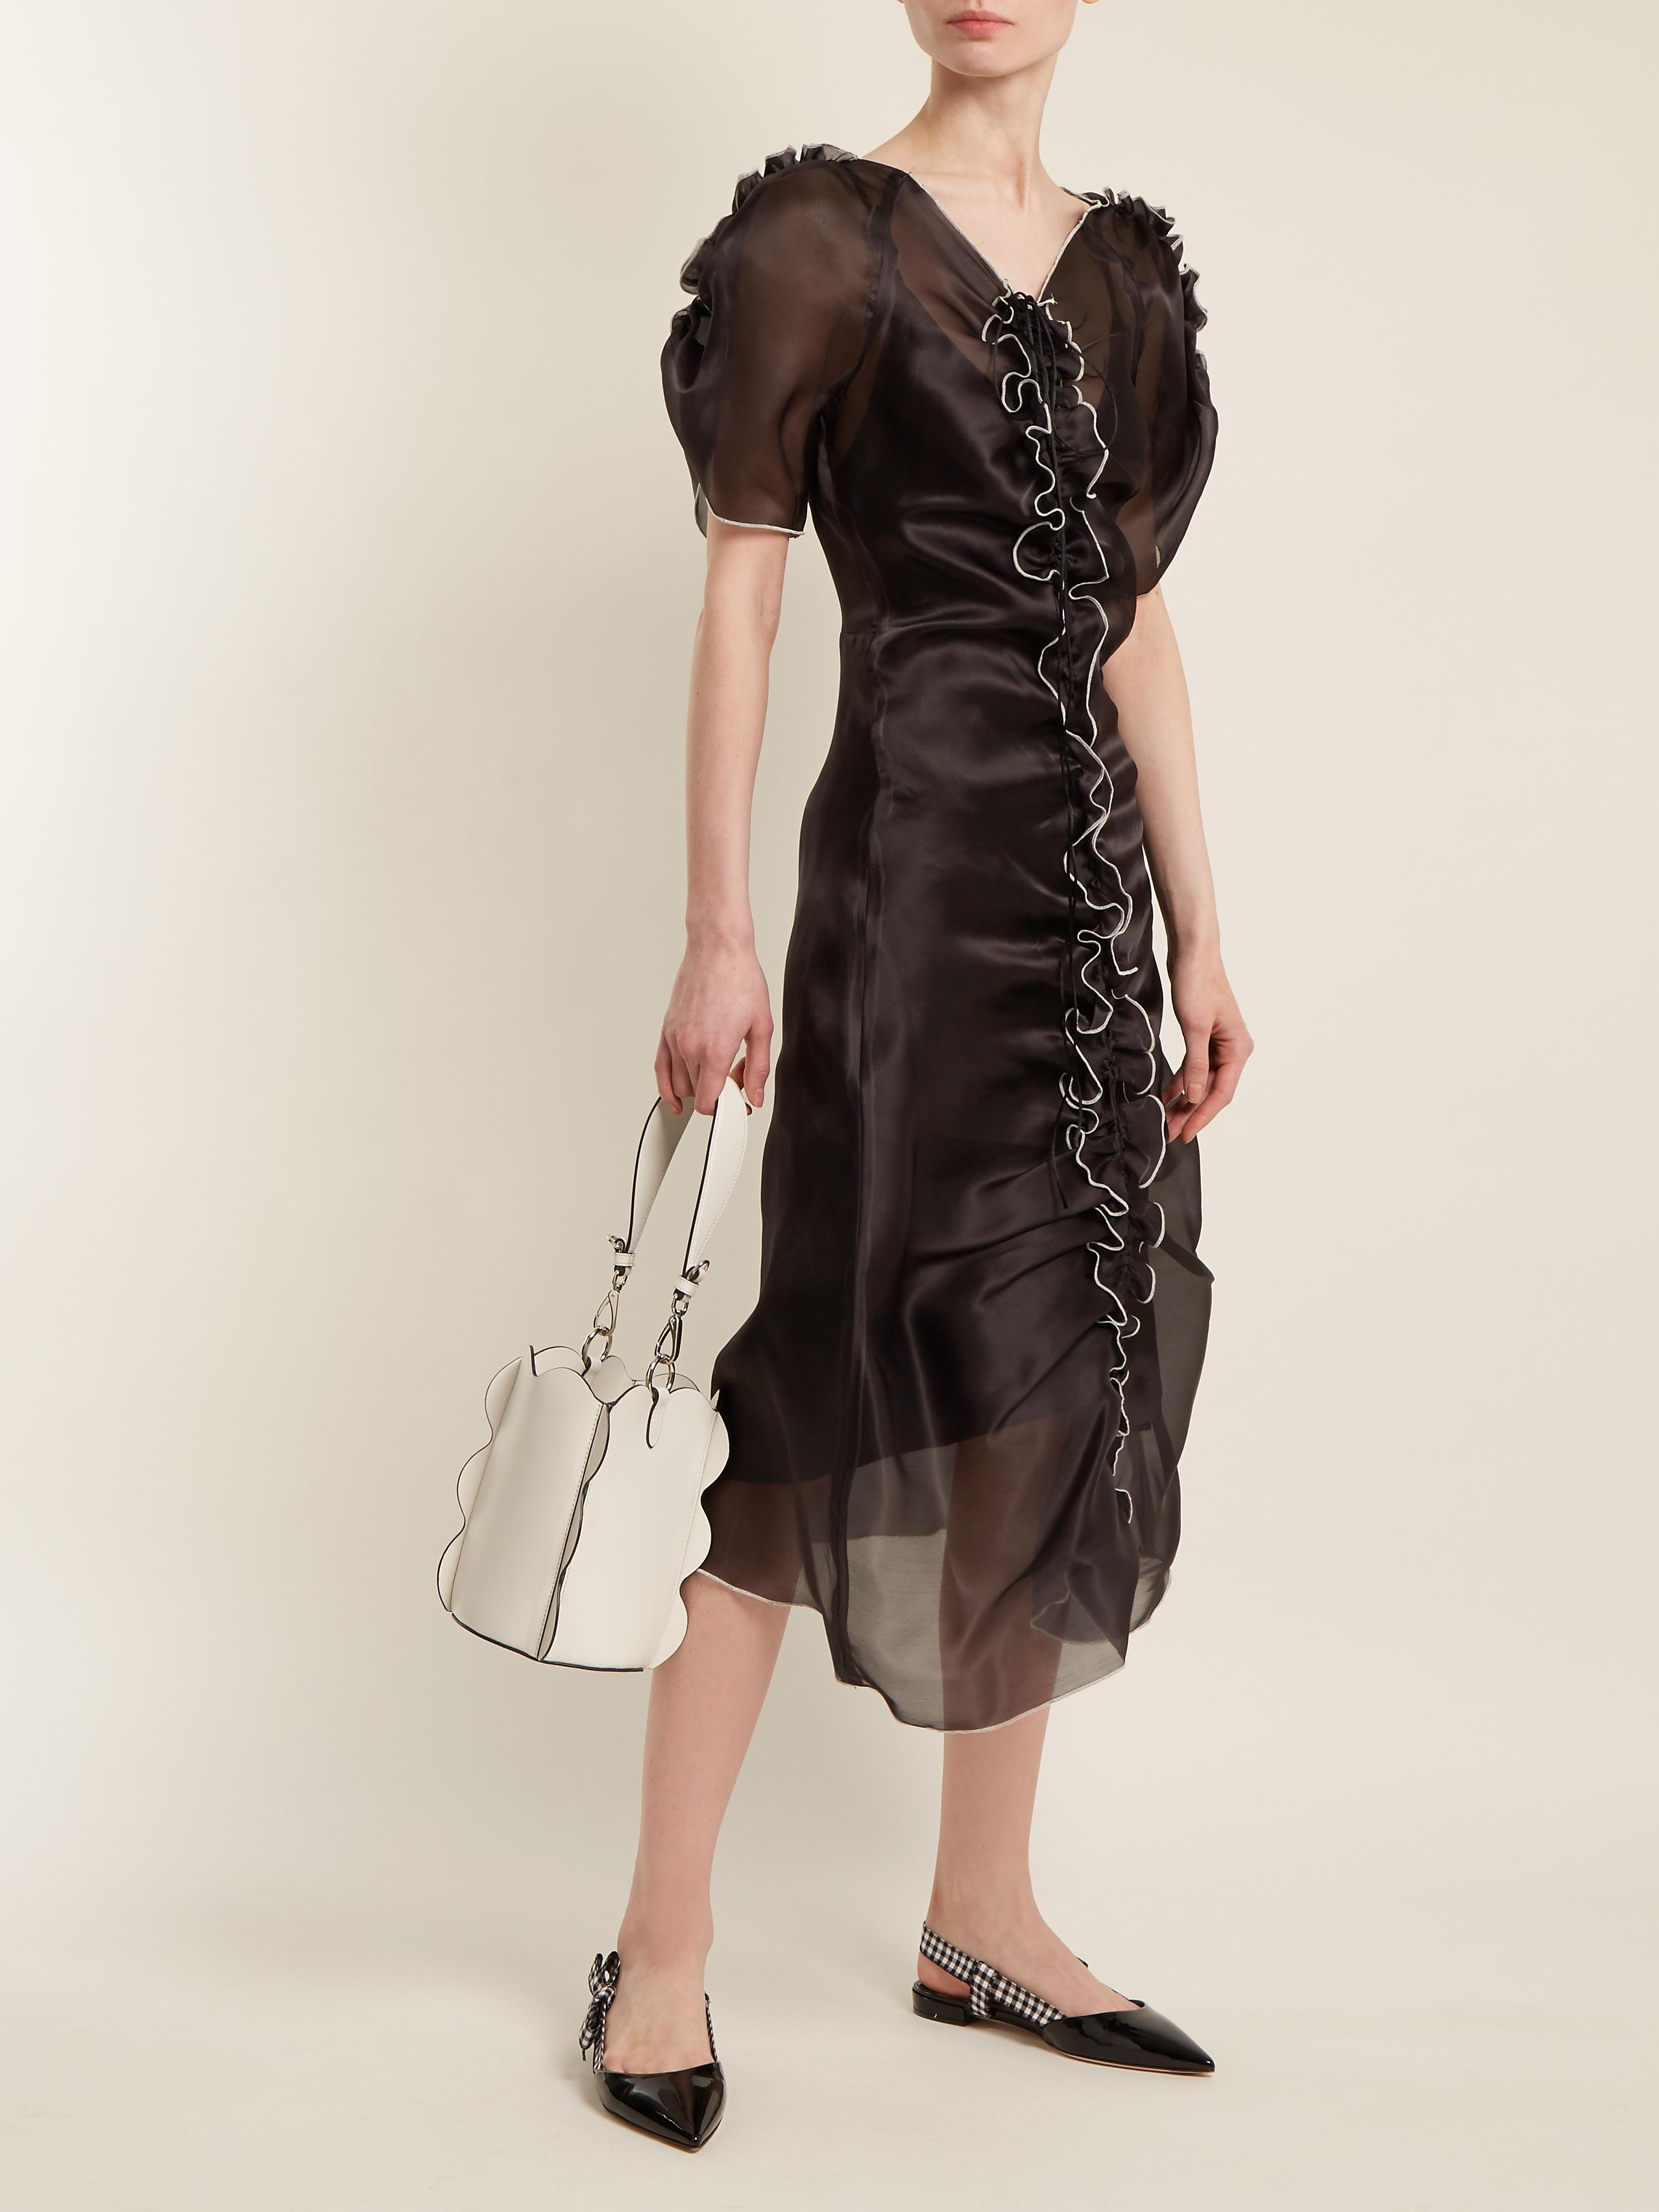 Sale Real Erin ruffle-trimmed silk-organza dress MOLLY GODDARD Buy Cheap Affordable 2018 New Sale Online Cheap Browse Cheap Sale Amazing Price XRsNEQmvbp